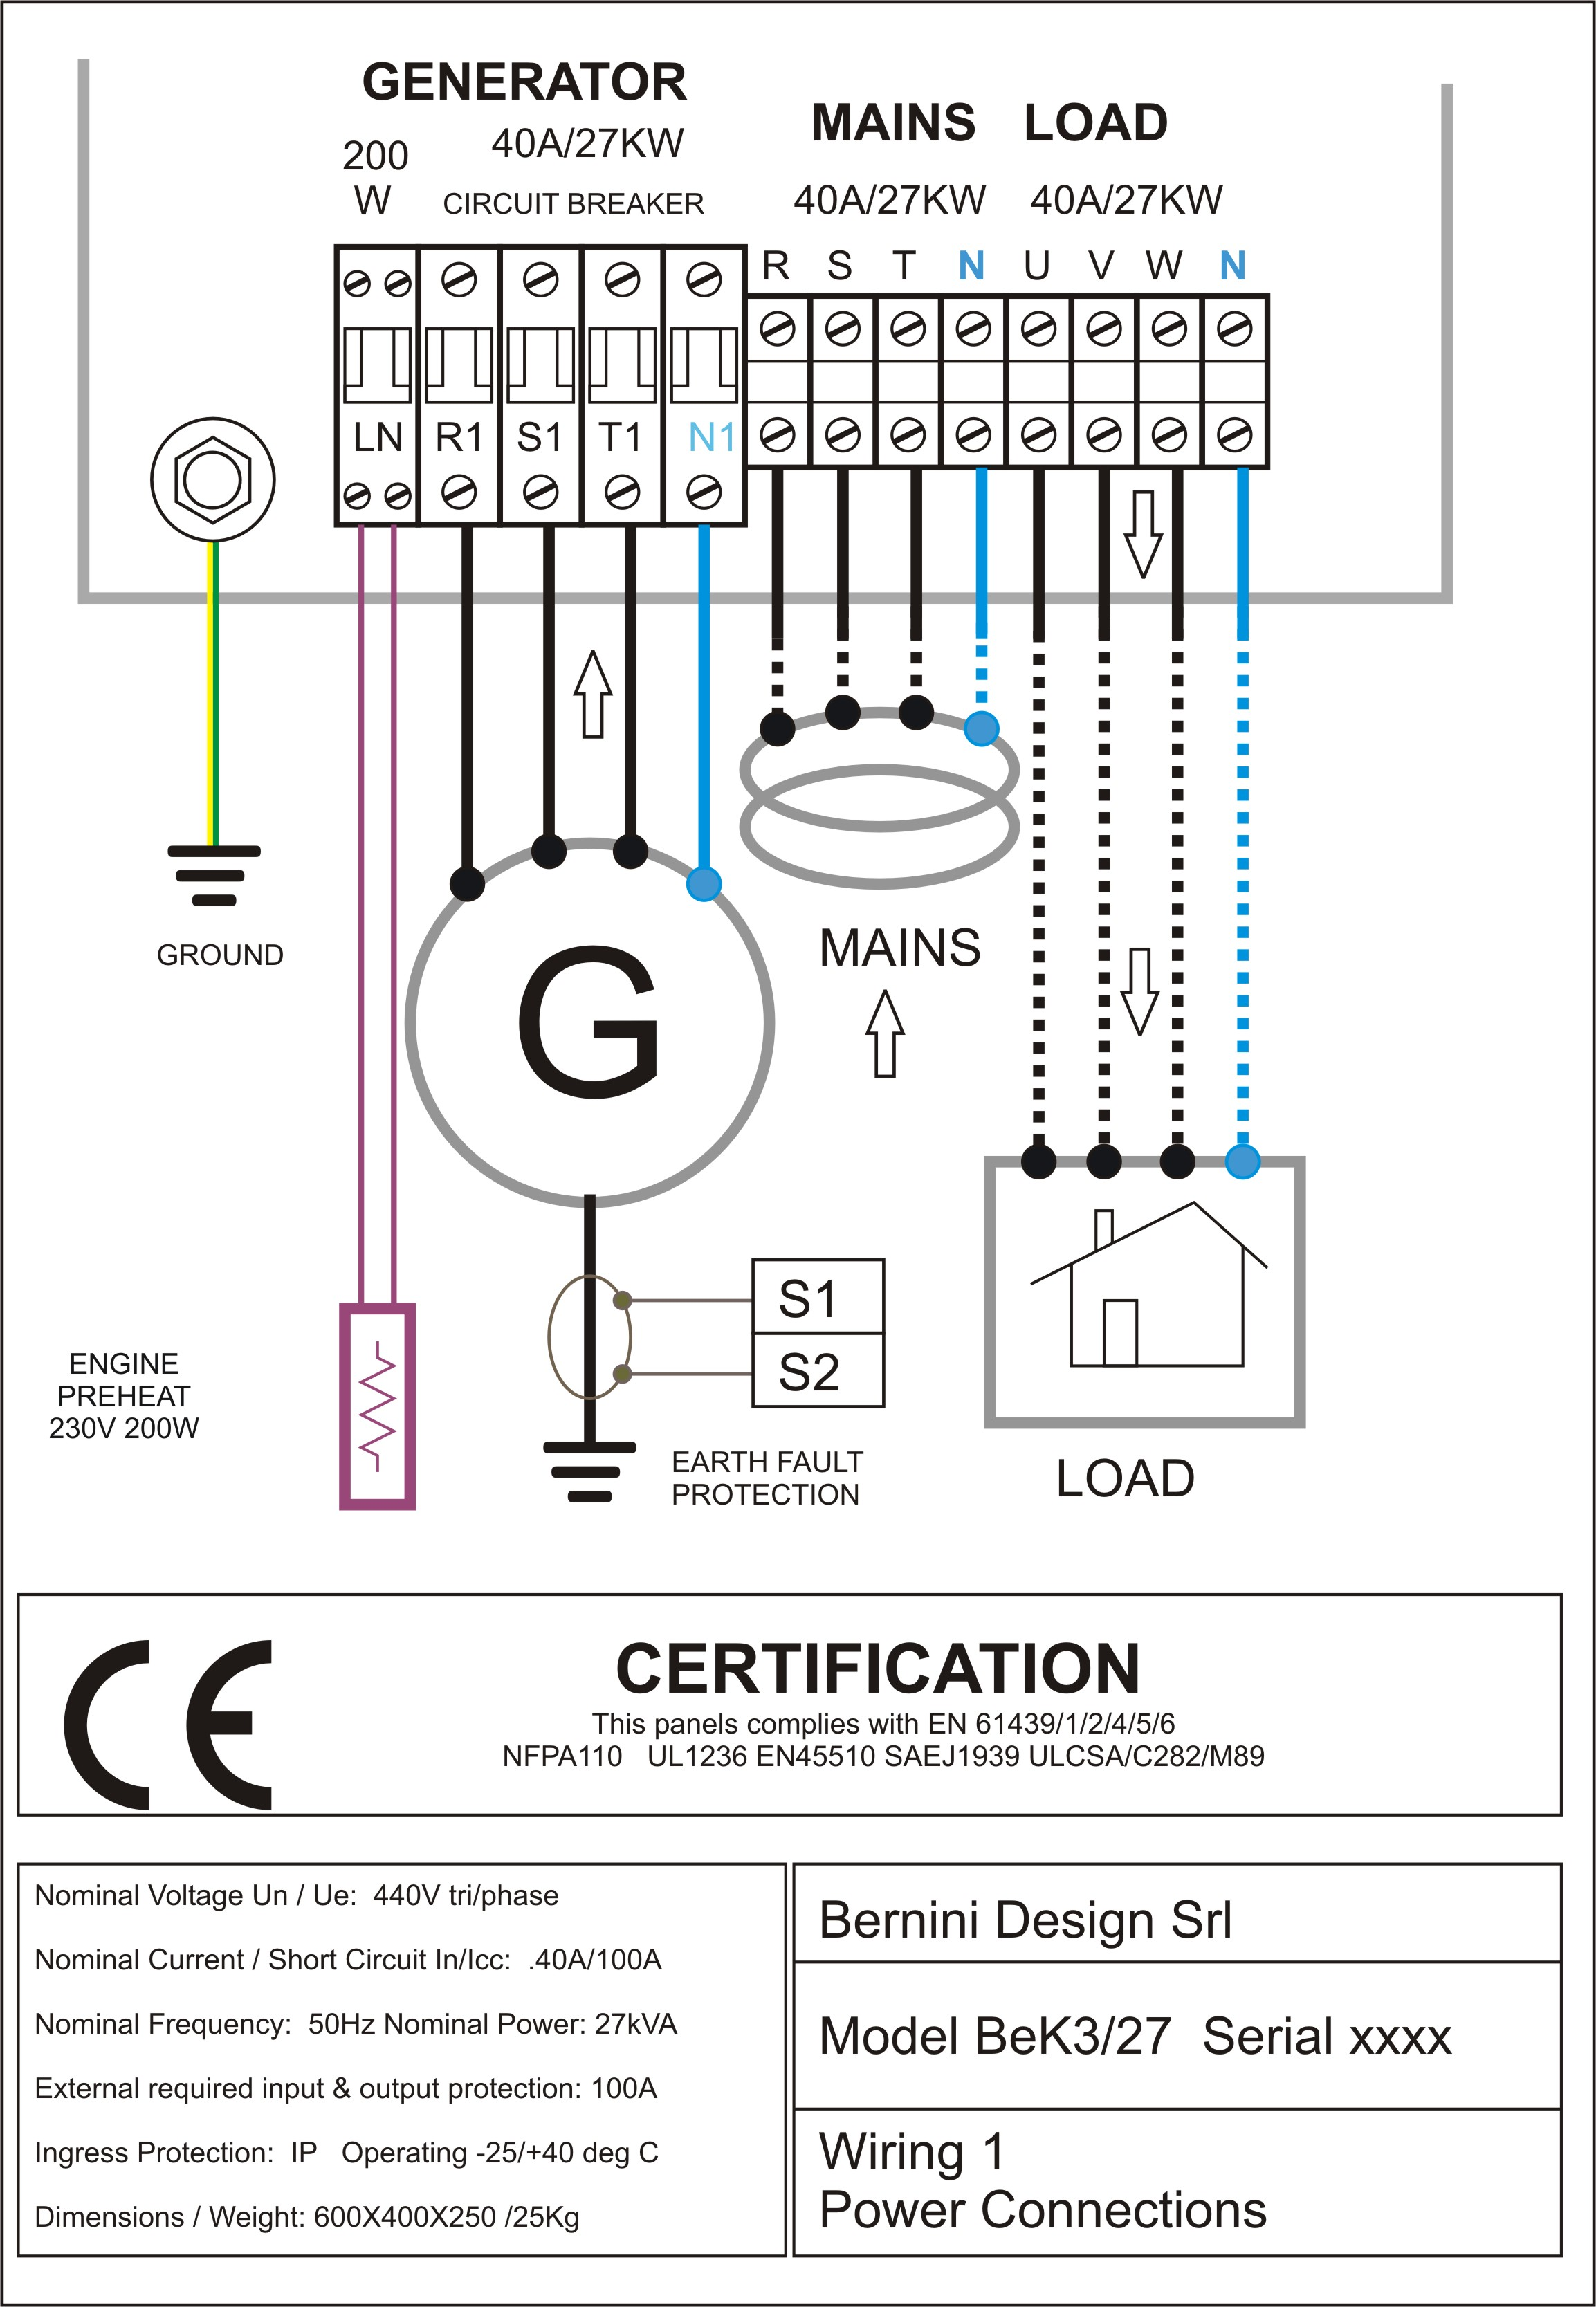 three phase converter wiring diagram passtime schematic for get free image